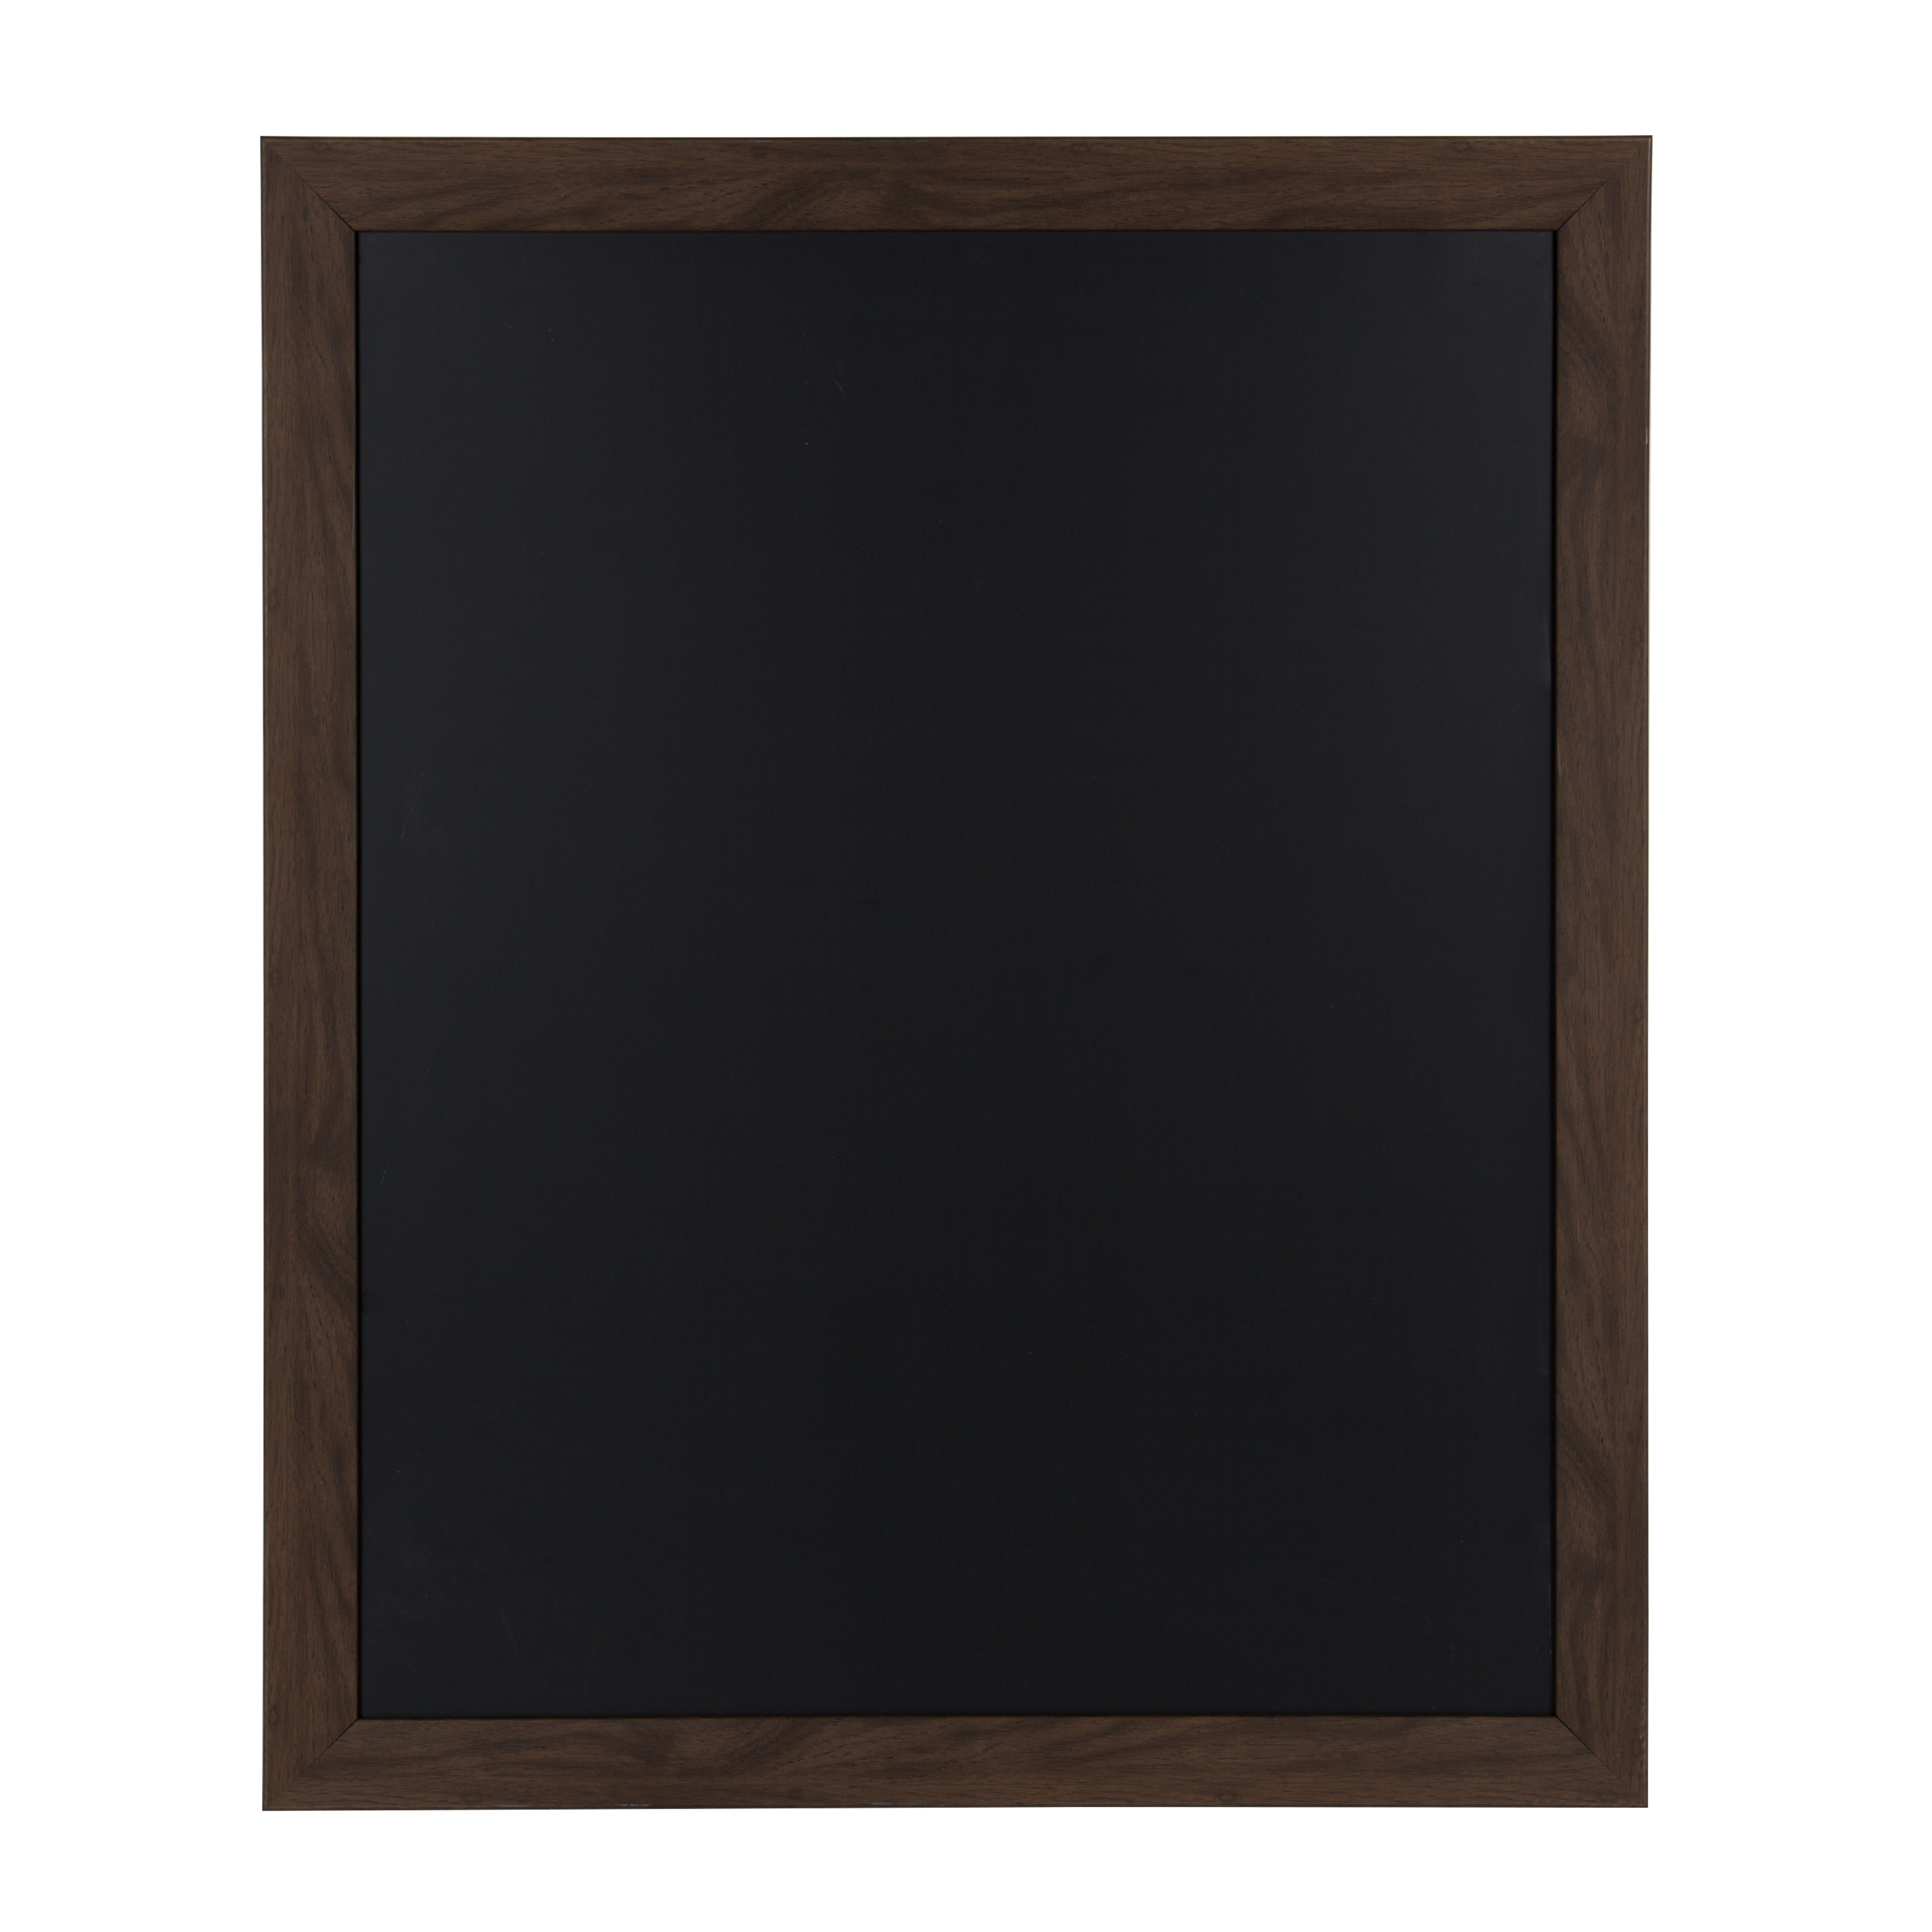 DesignOvation Beatrice Framed Magnetic Chalkboard, 29.5x45.5, Farmhouse White by Uniek